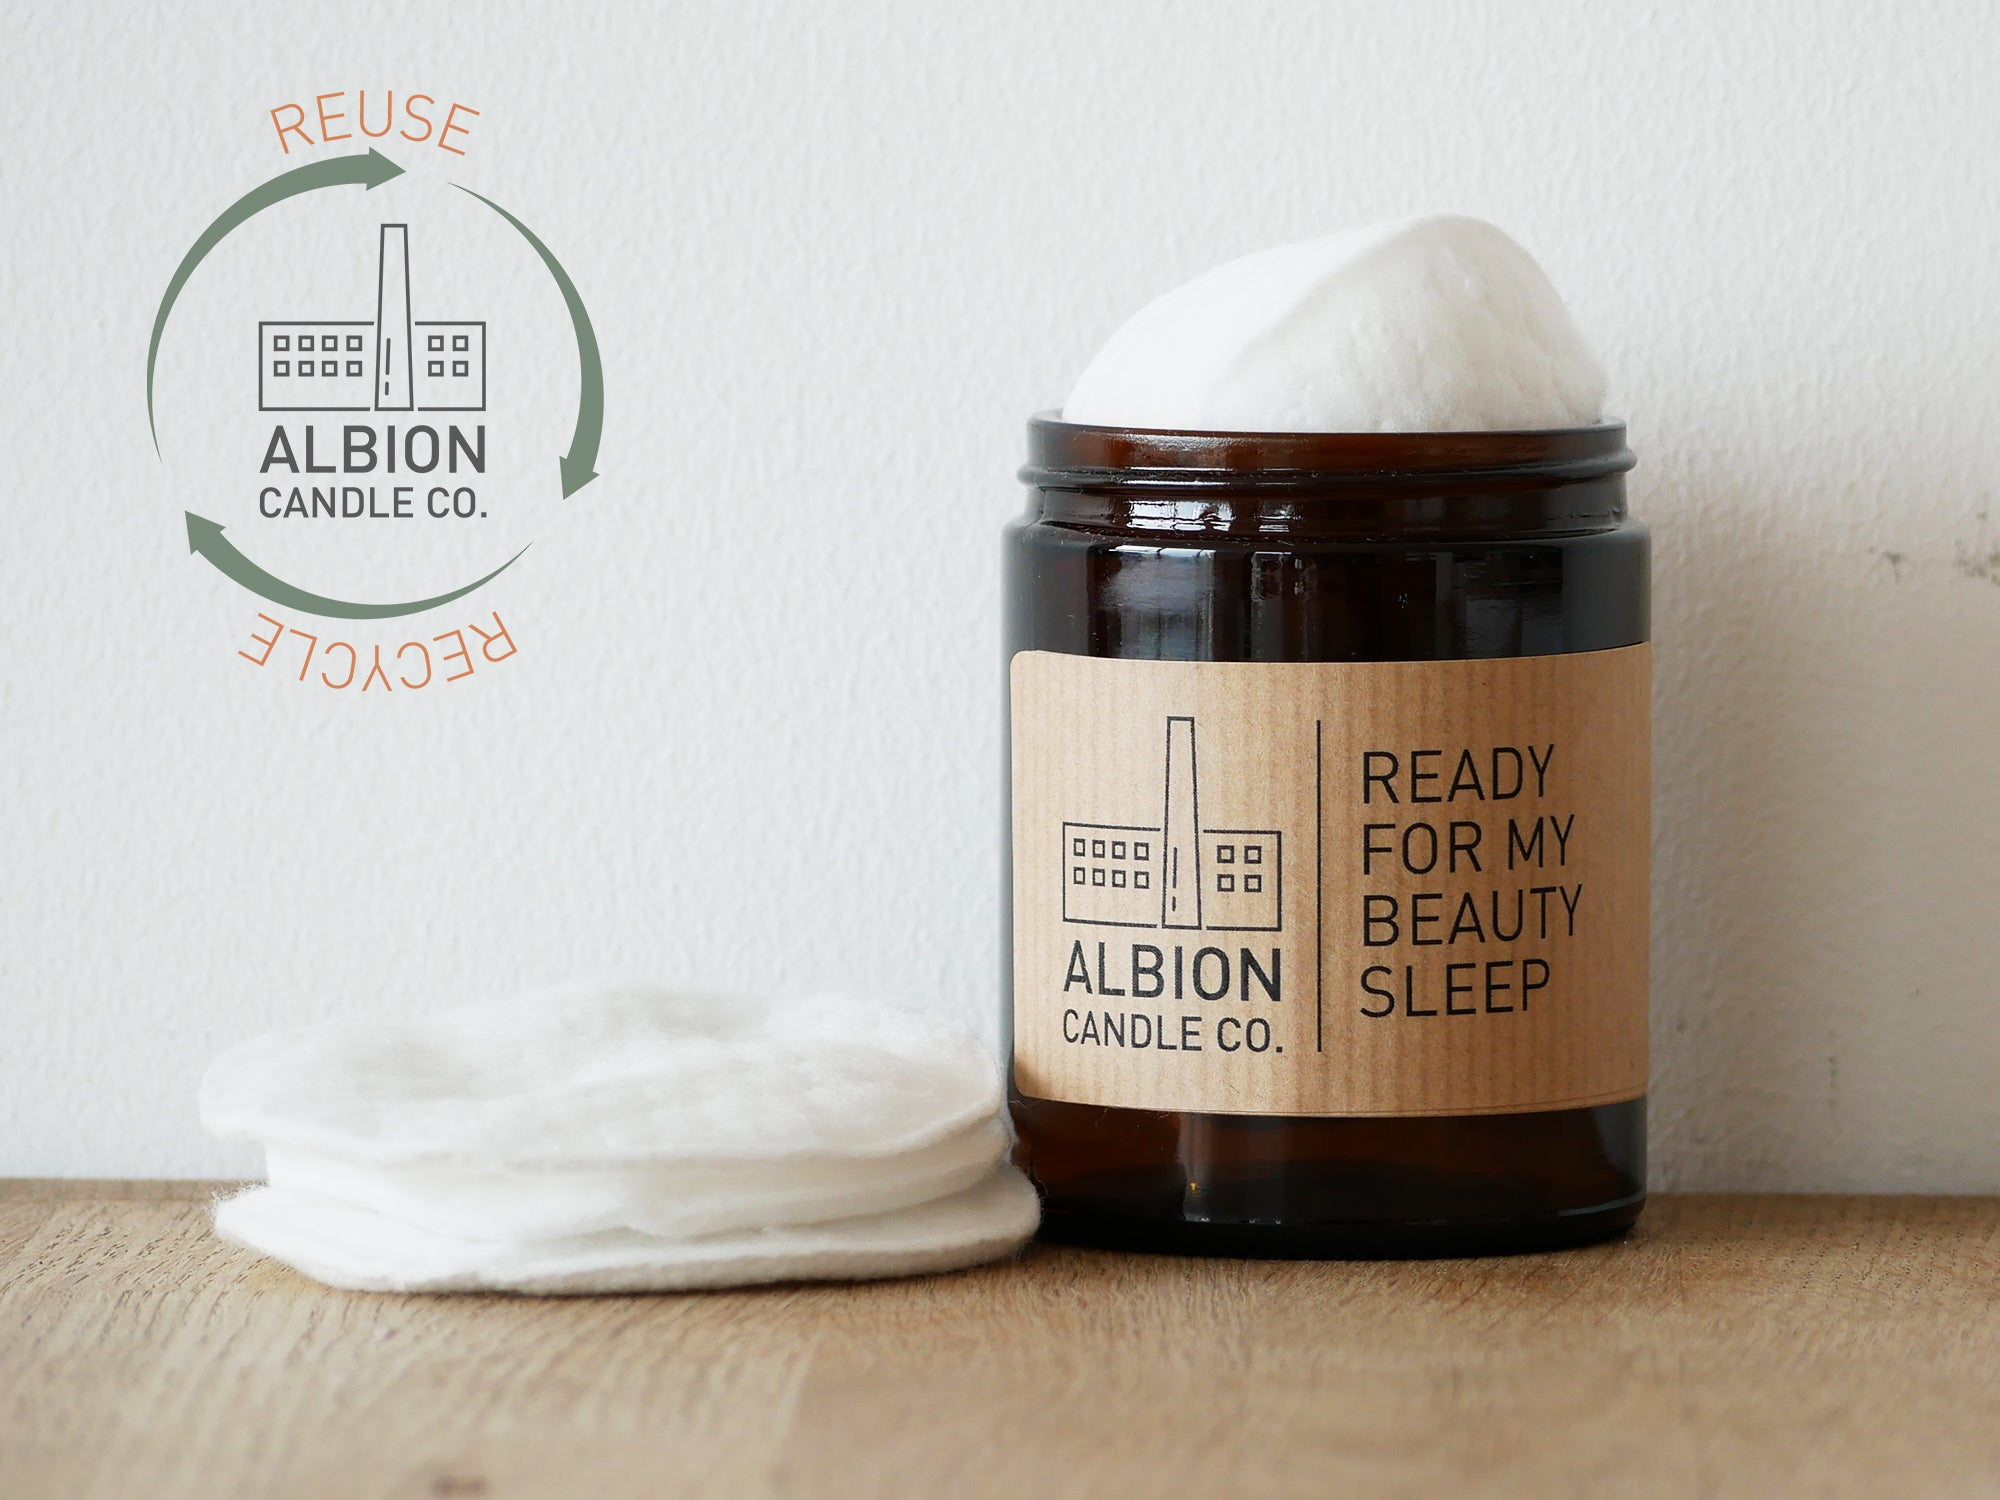 'READY FOR MY BEAUTY SLEEP' LABEL